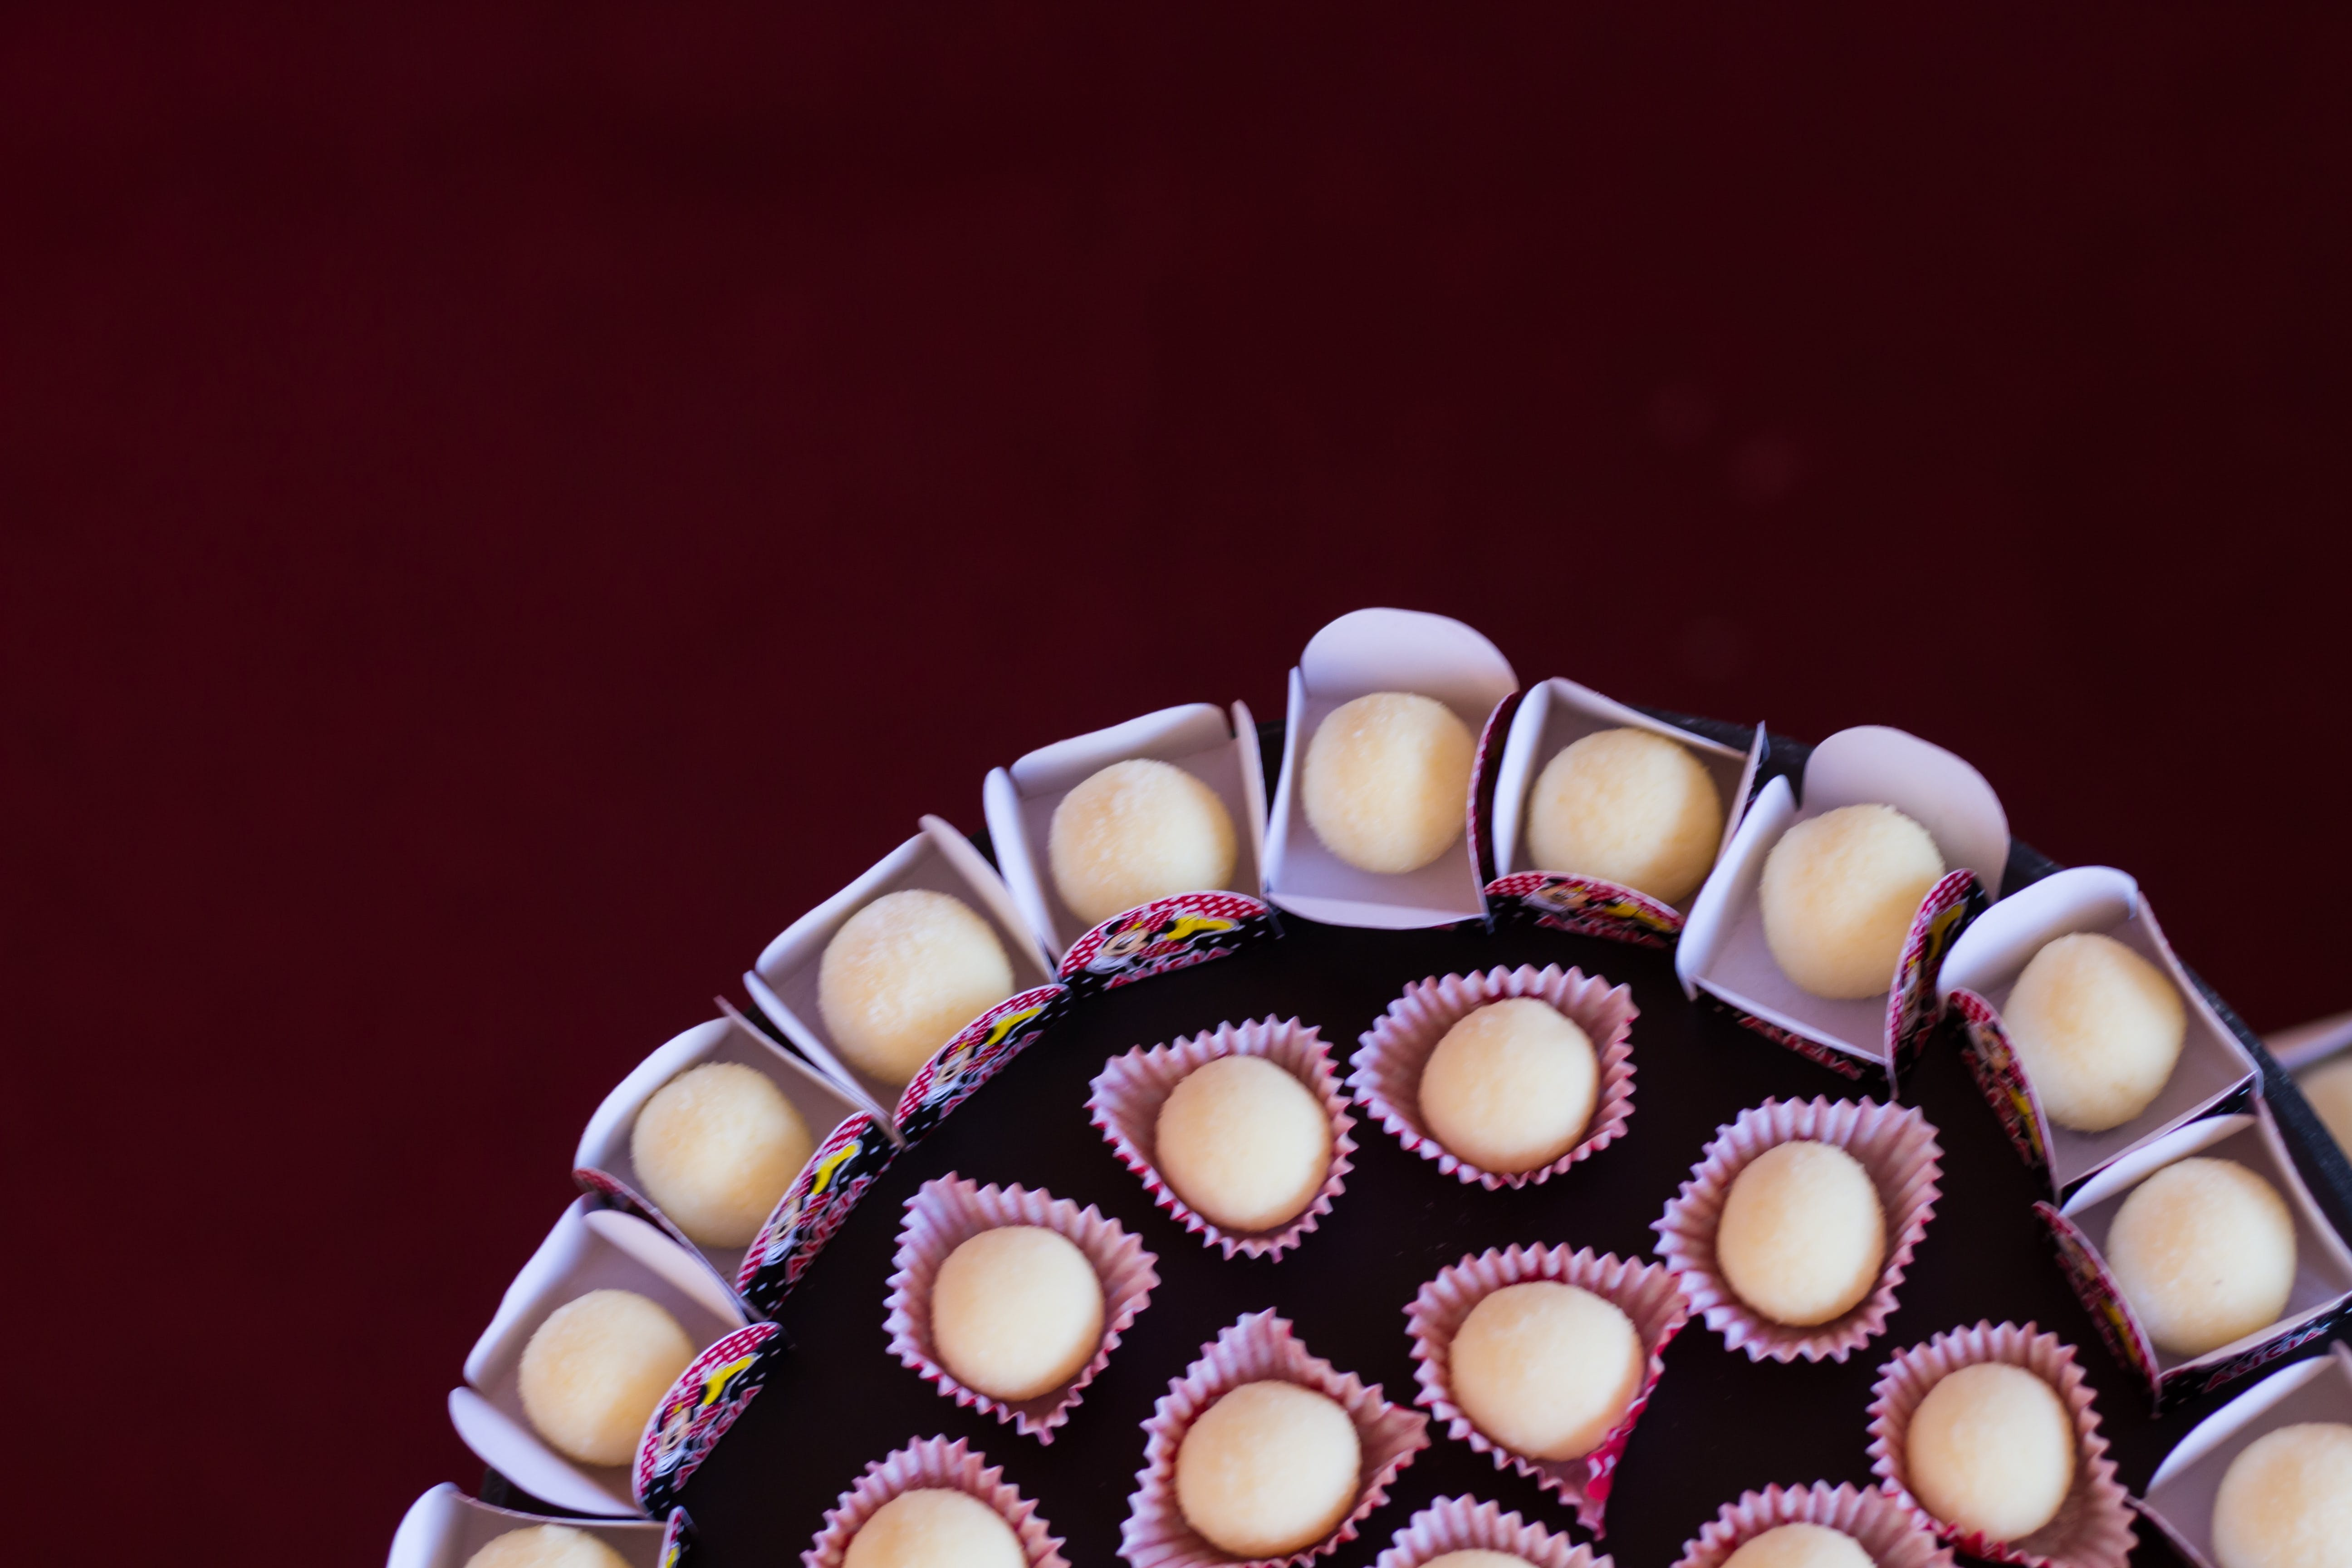 Free stock photo of candy, birthday cake, candy store